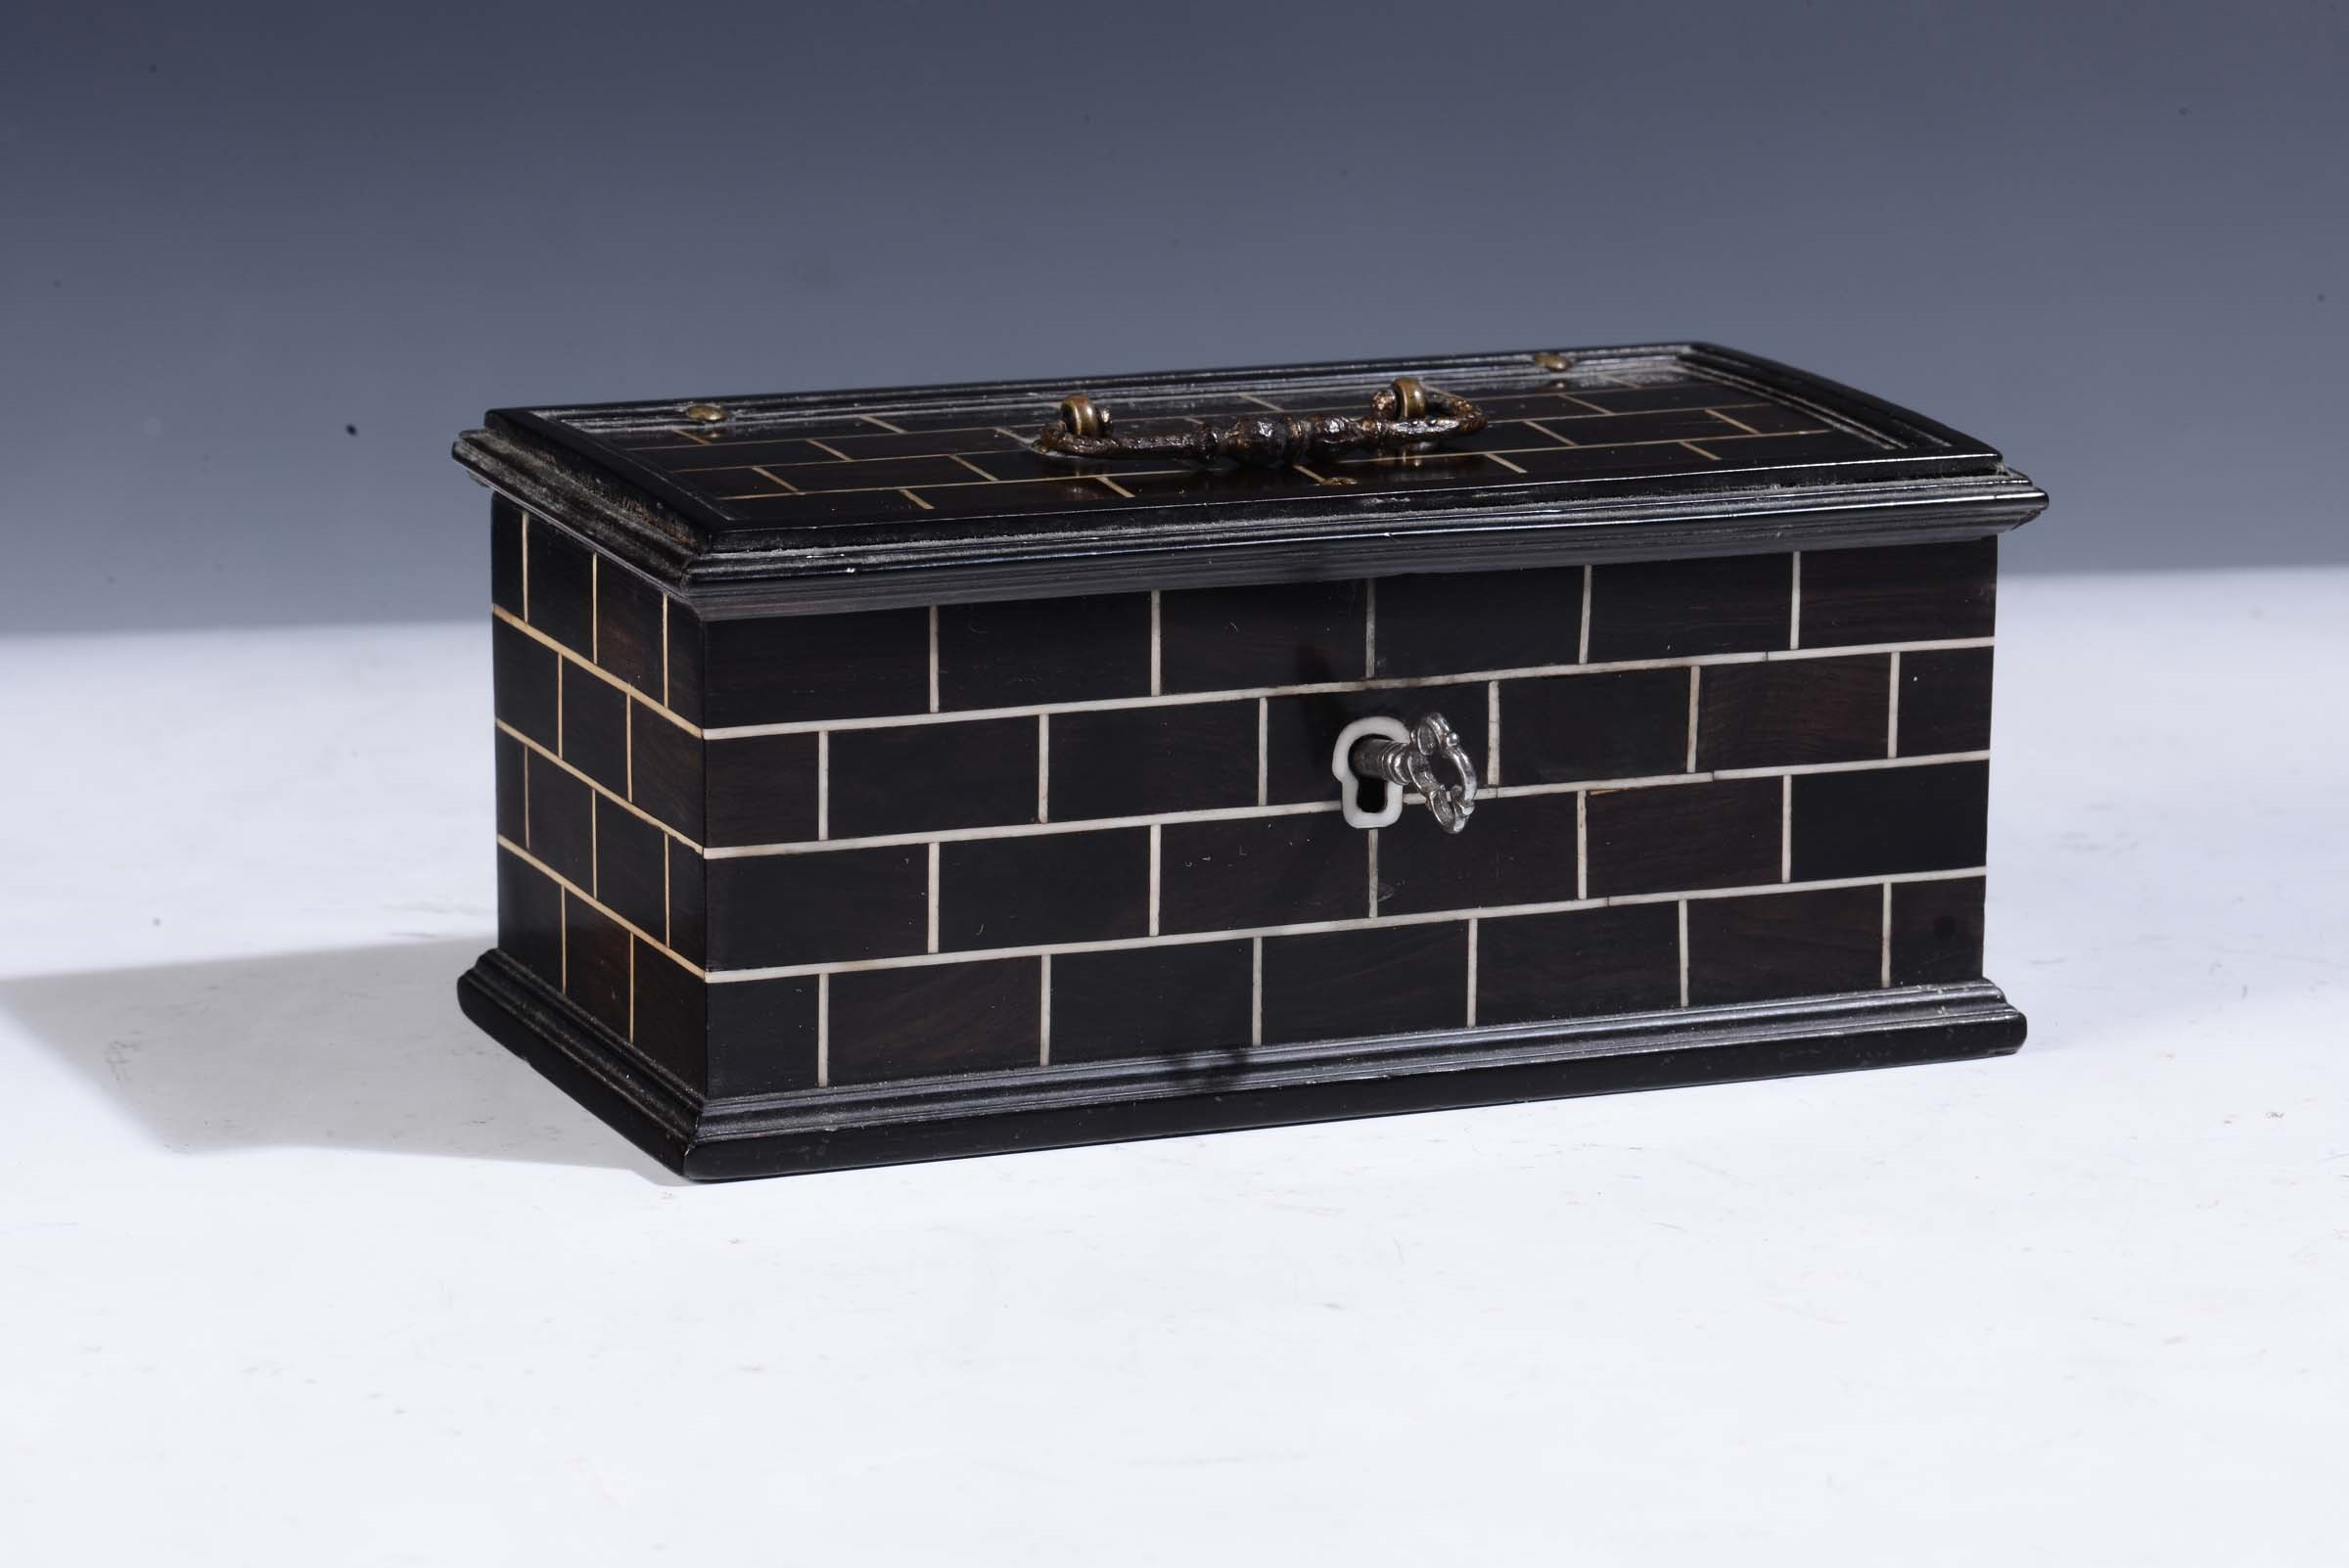 Lot 156 - Italy or Germany, 17th century, Rectangular casket - wood and ivory, cm 17x8,5x7,5 -